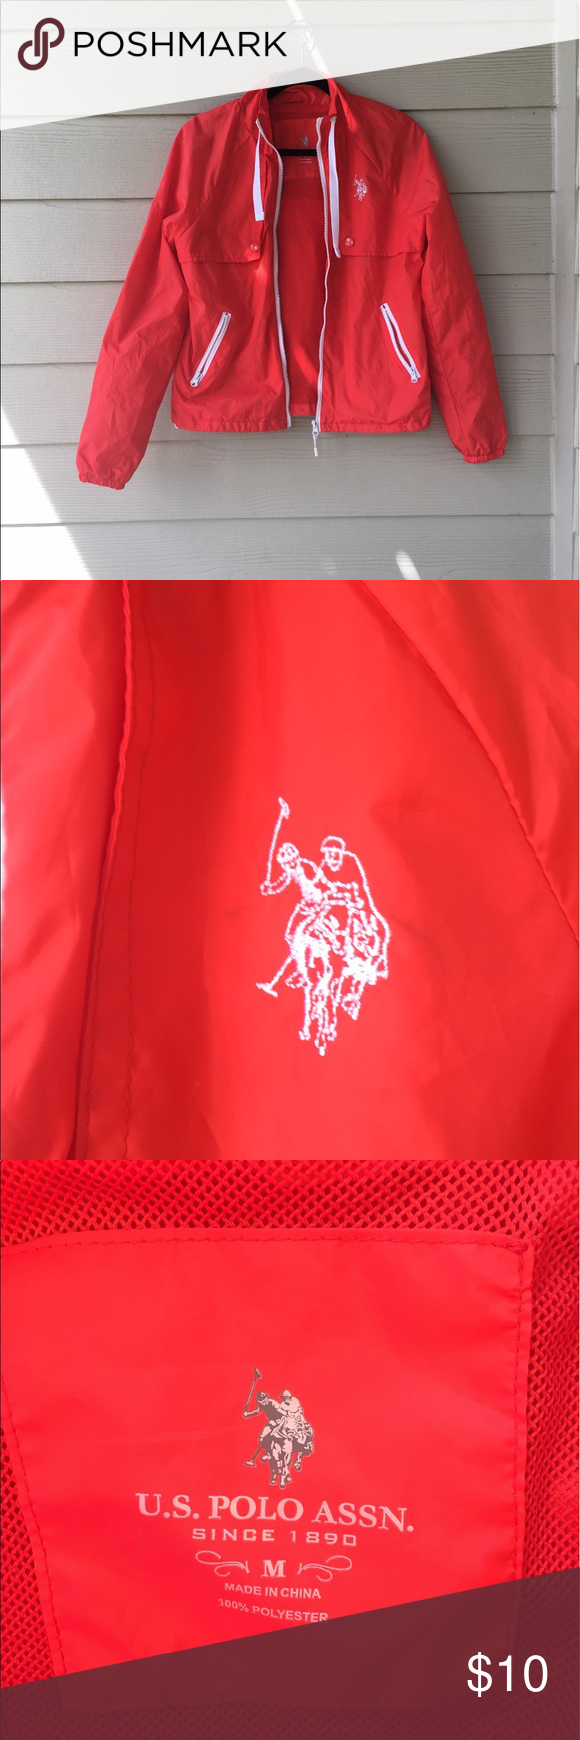 Tomato colored Windbreaker! 🍅🌪 It wonderful condition and perfect for this spring! U.S. Polo Assn. Jackets & Coats